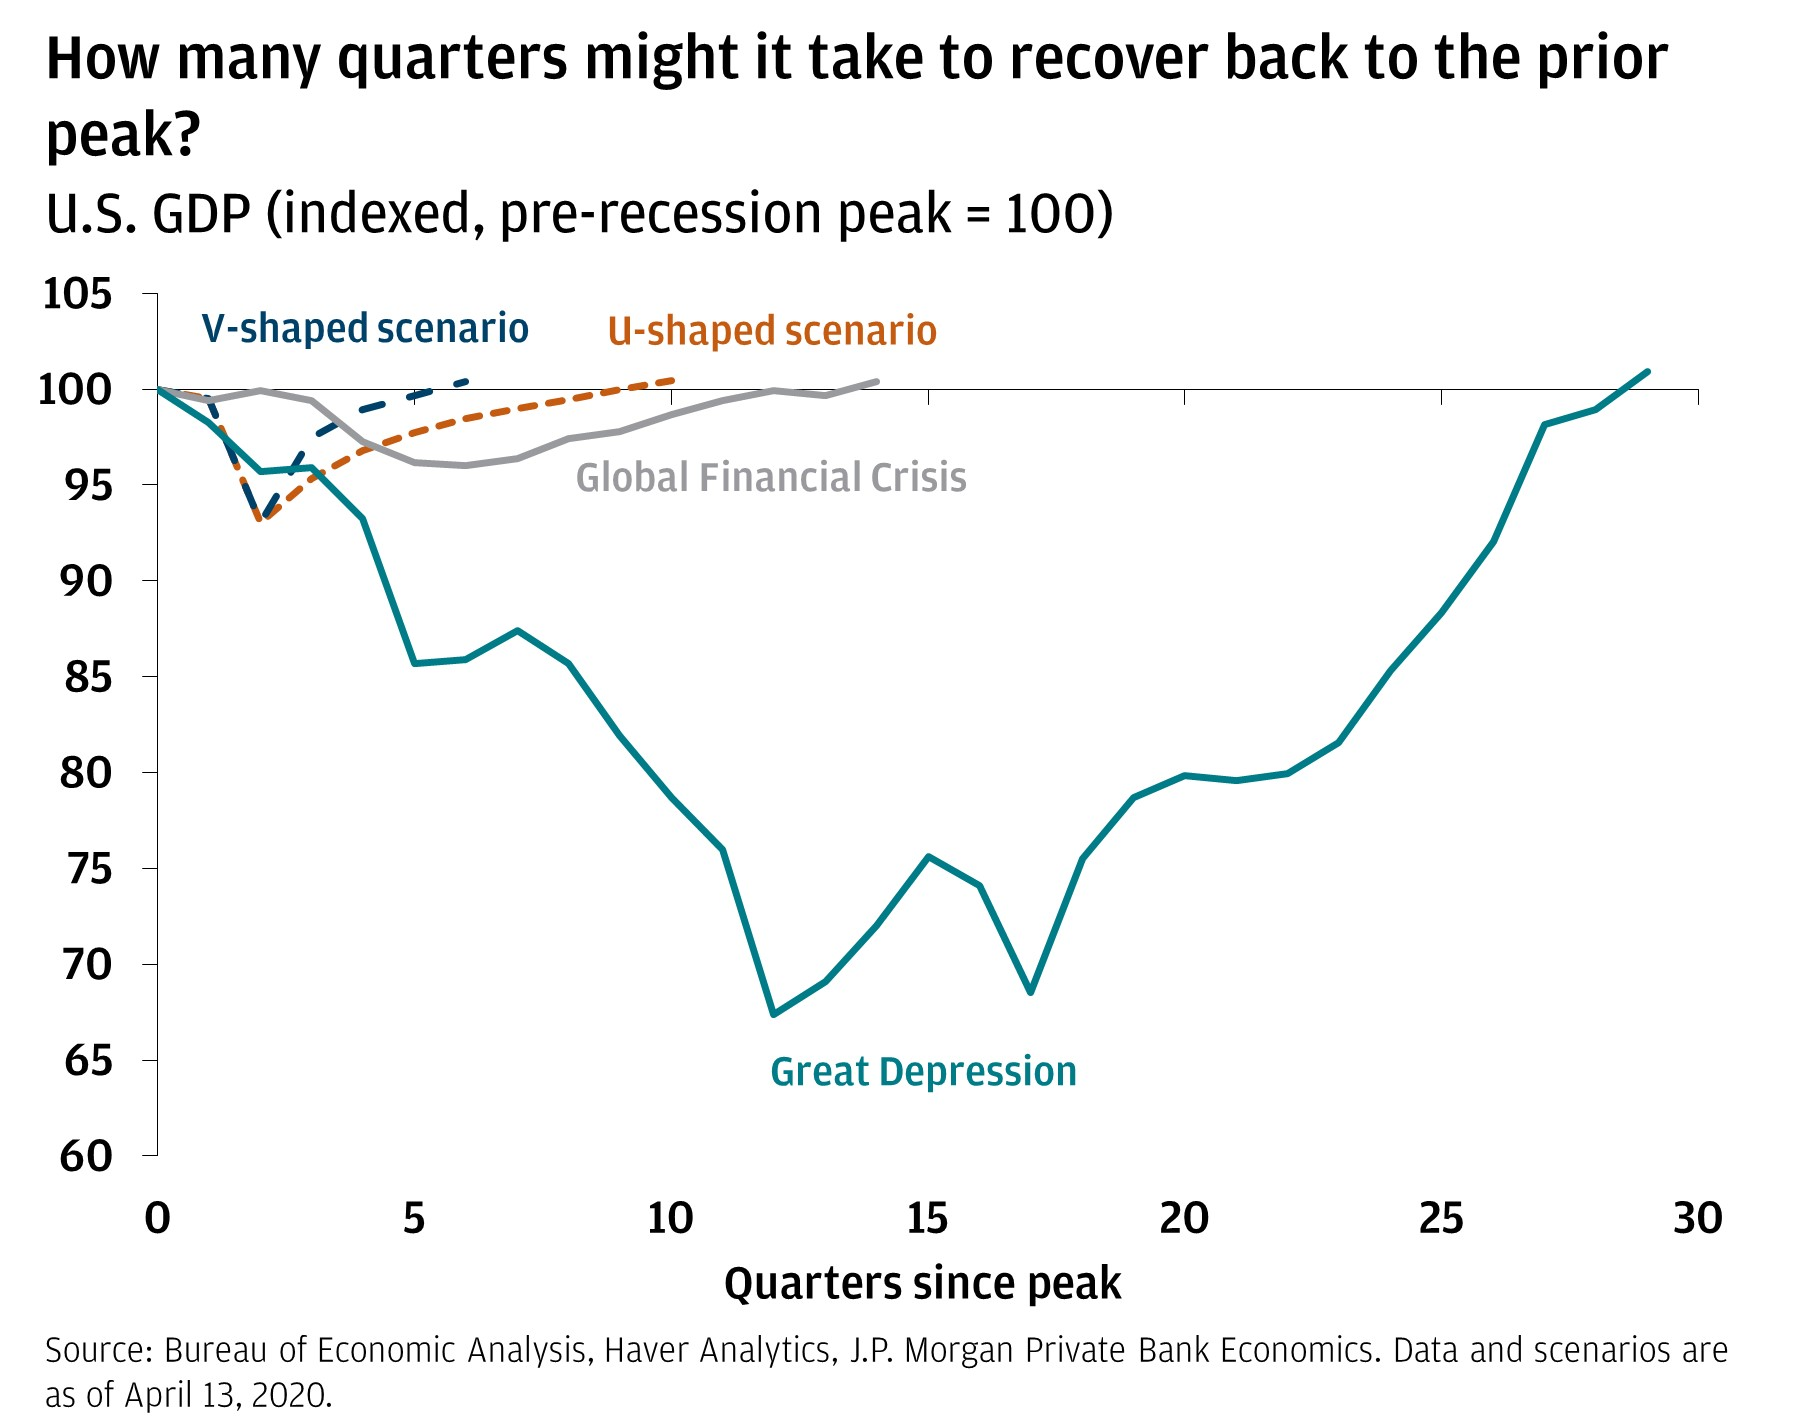 The line chart projects the number of quarters it will take to reach the prior peak before the recession. It shows GDP with GDP at the peak before the recession set at 100. It shows the V scenario and U scenario for this recession, and compares both to the Great Financial Crisis and the Great Depression.